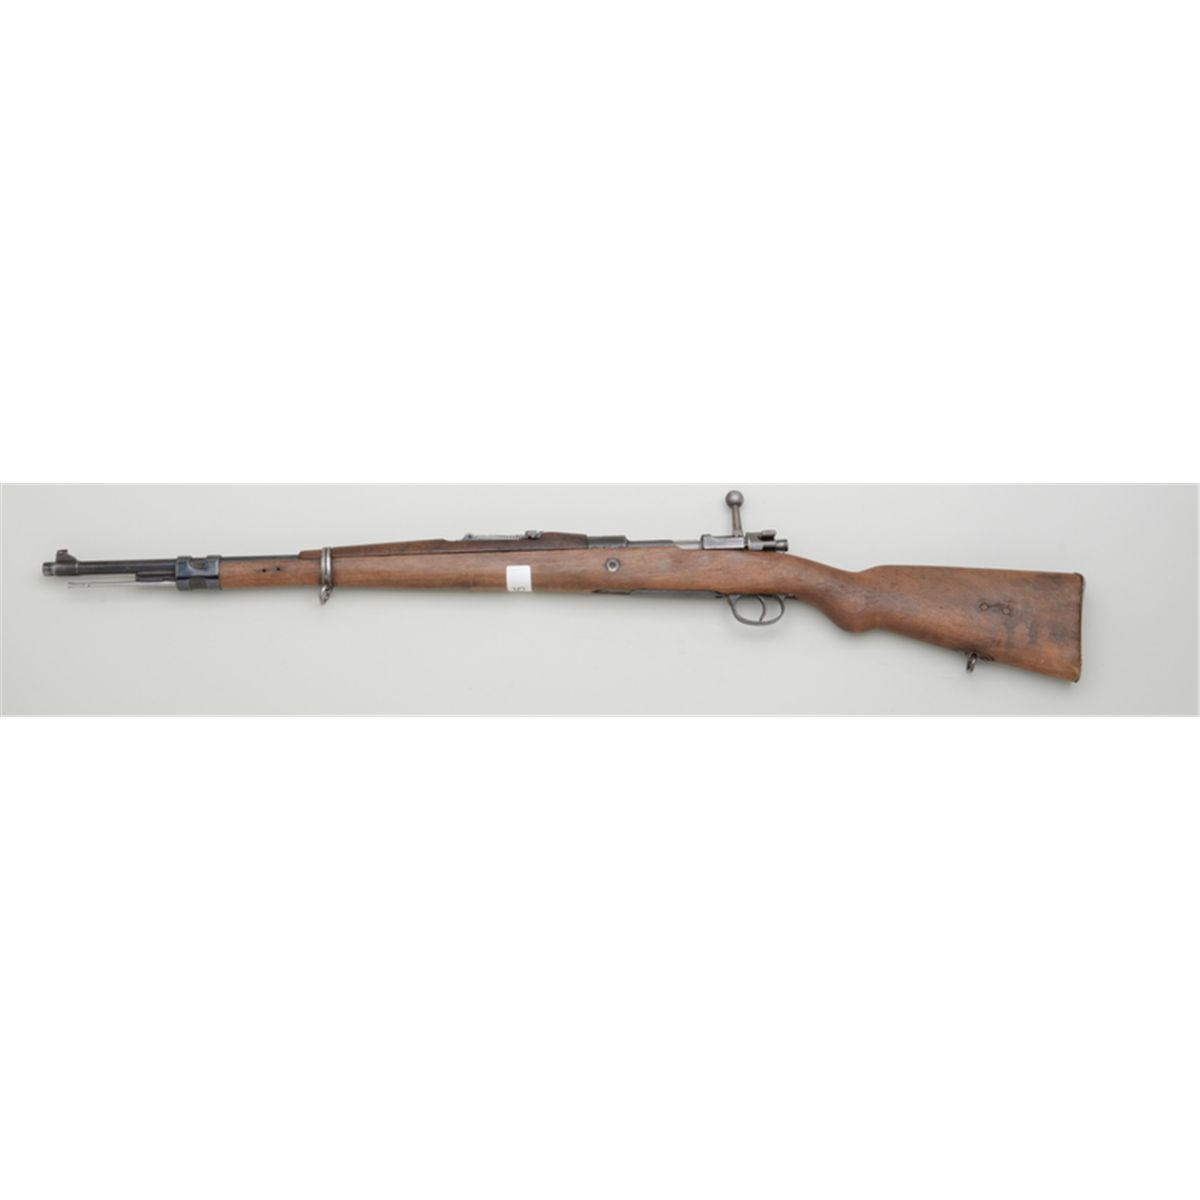 FN Mauser Model 98 bolt-action military rifle,  30-06 cal